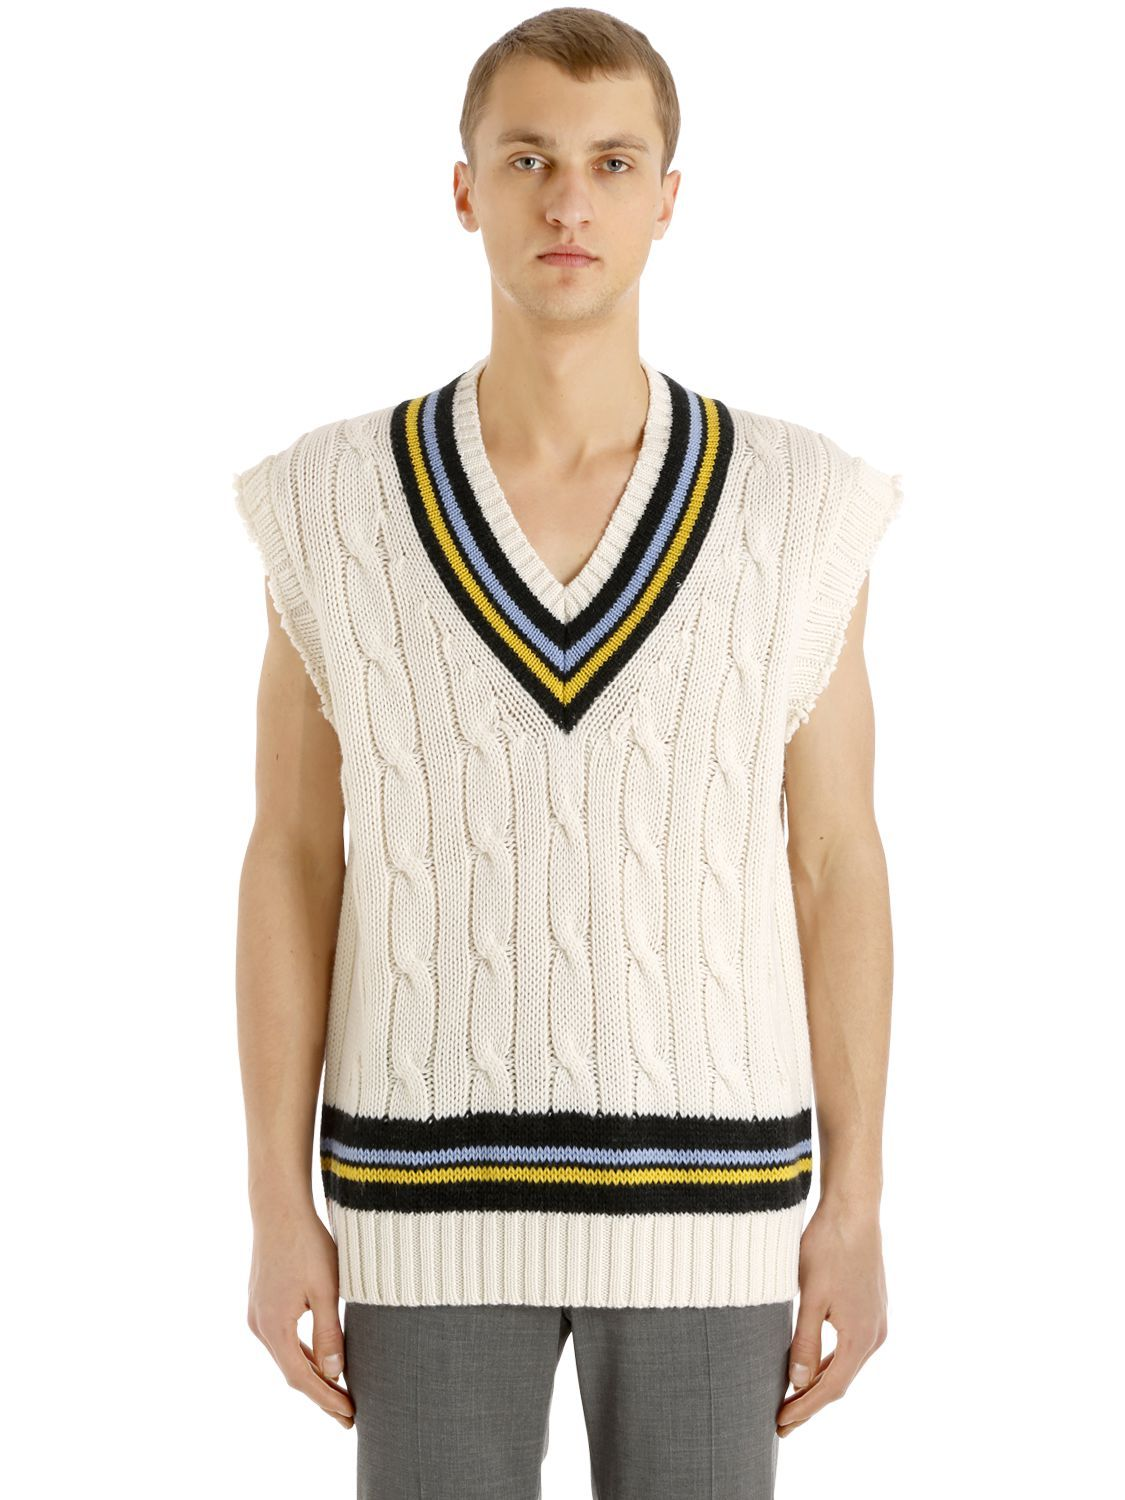 Maison Margiela Raw Edge Sleeveless Cable Knit Sweater In Cream Modesens Cable Knit Vest Cable Knit Sweaters Cable Knit